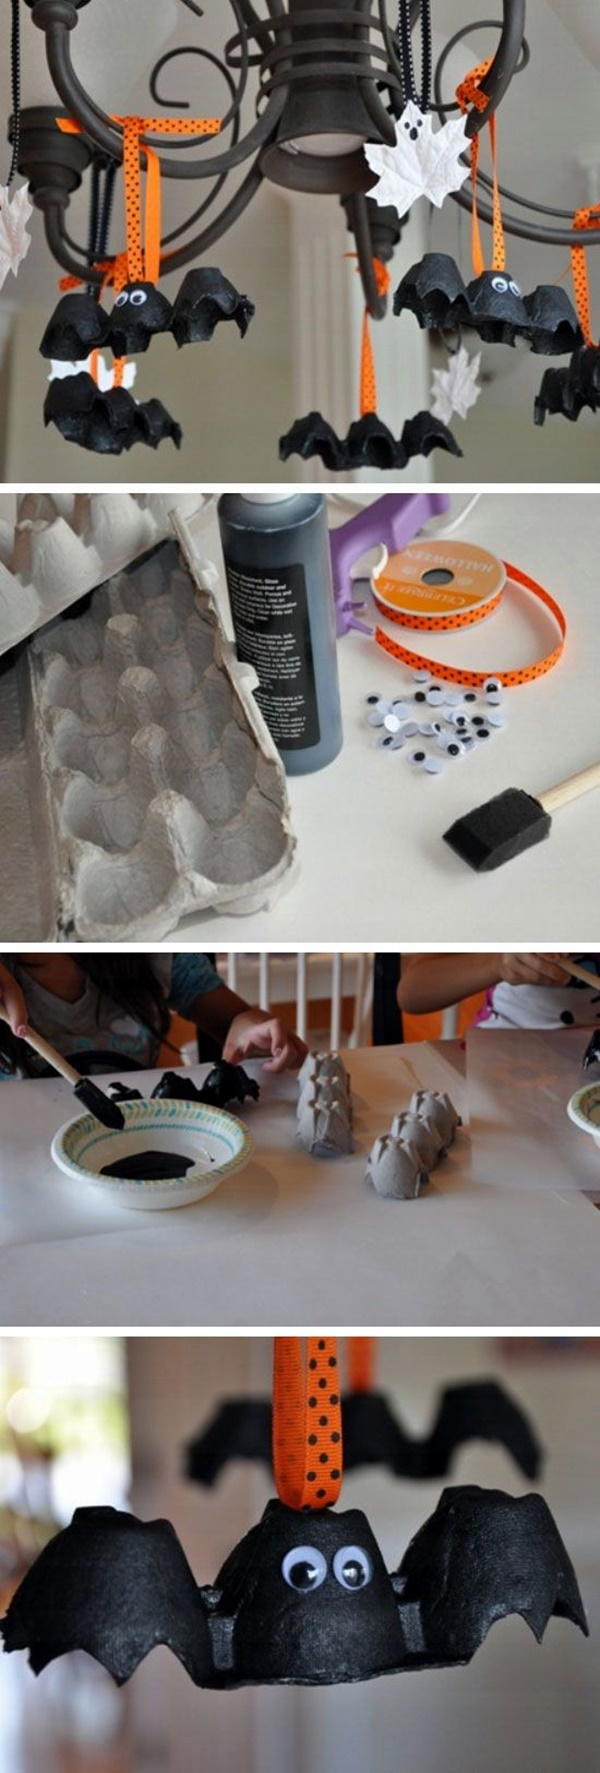 diy-halloween-craft-ideas-for-kids-16